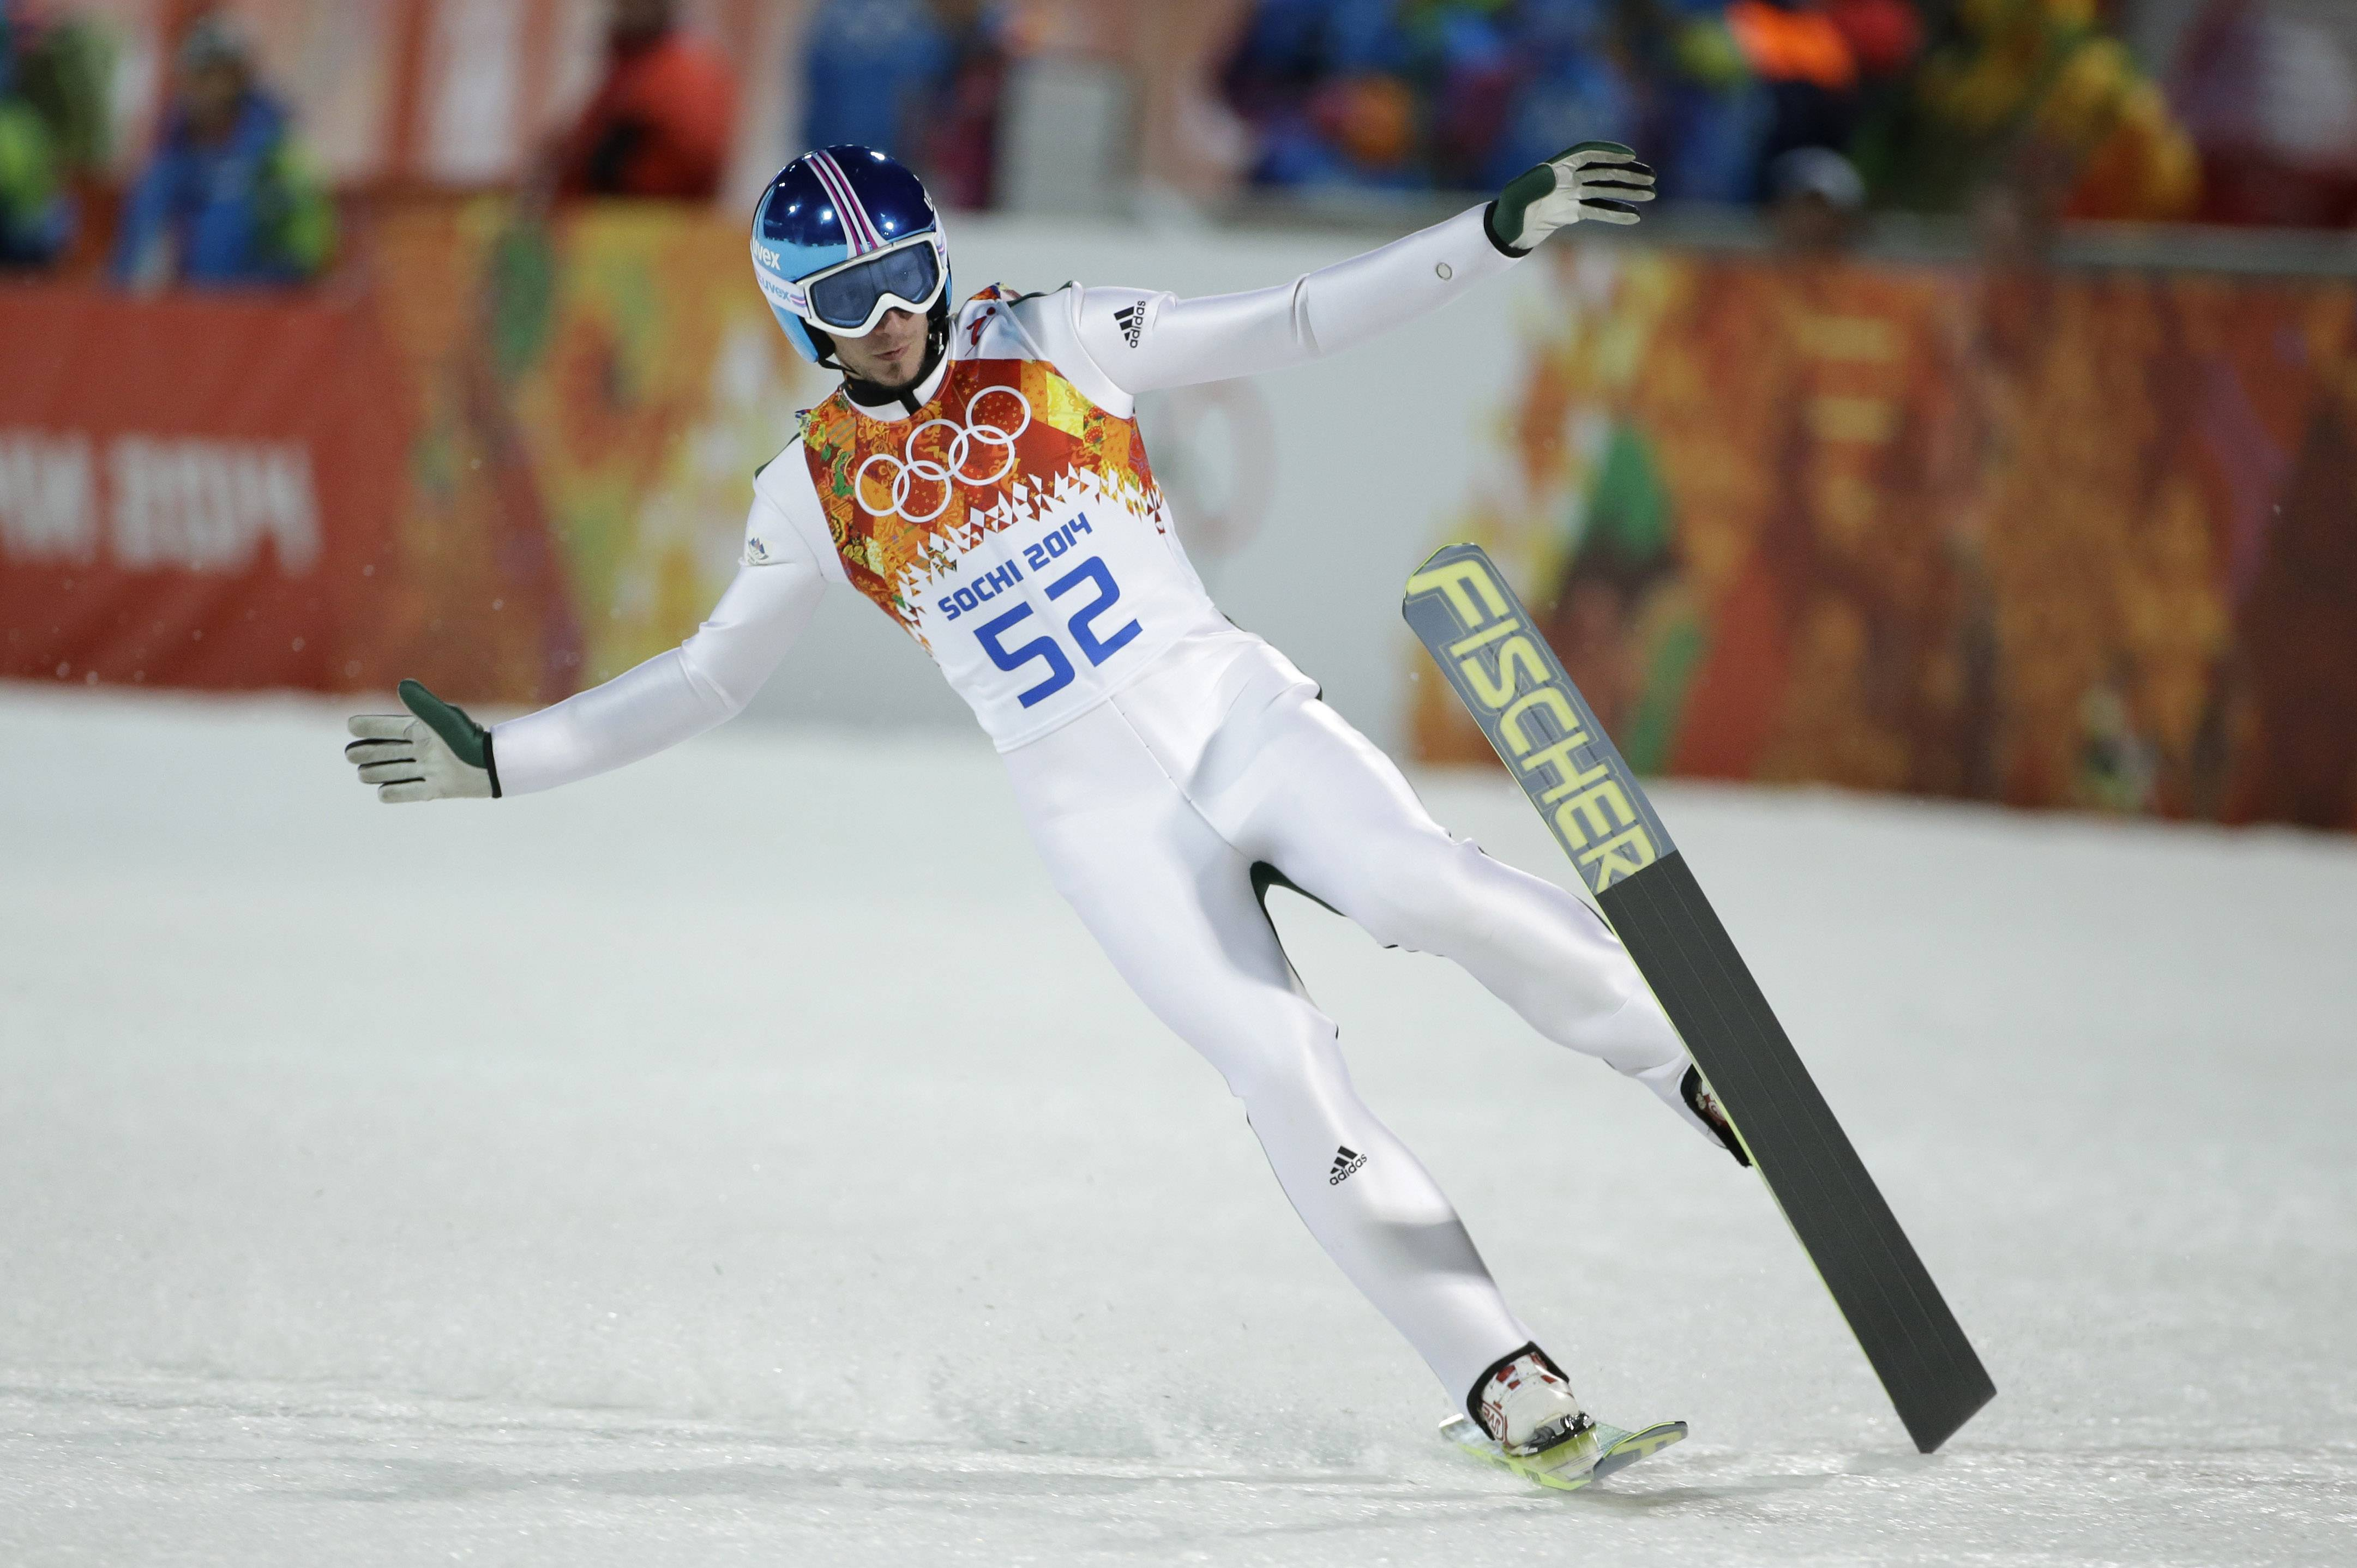 Slovenia's Robert Kranjec skis on one ski after an attempt during the ski jumping large hill qualification.